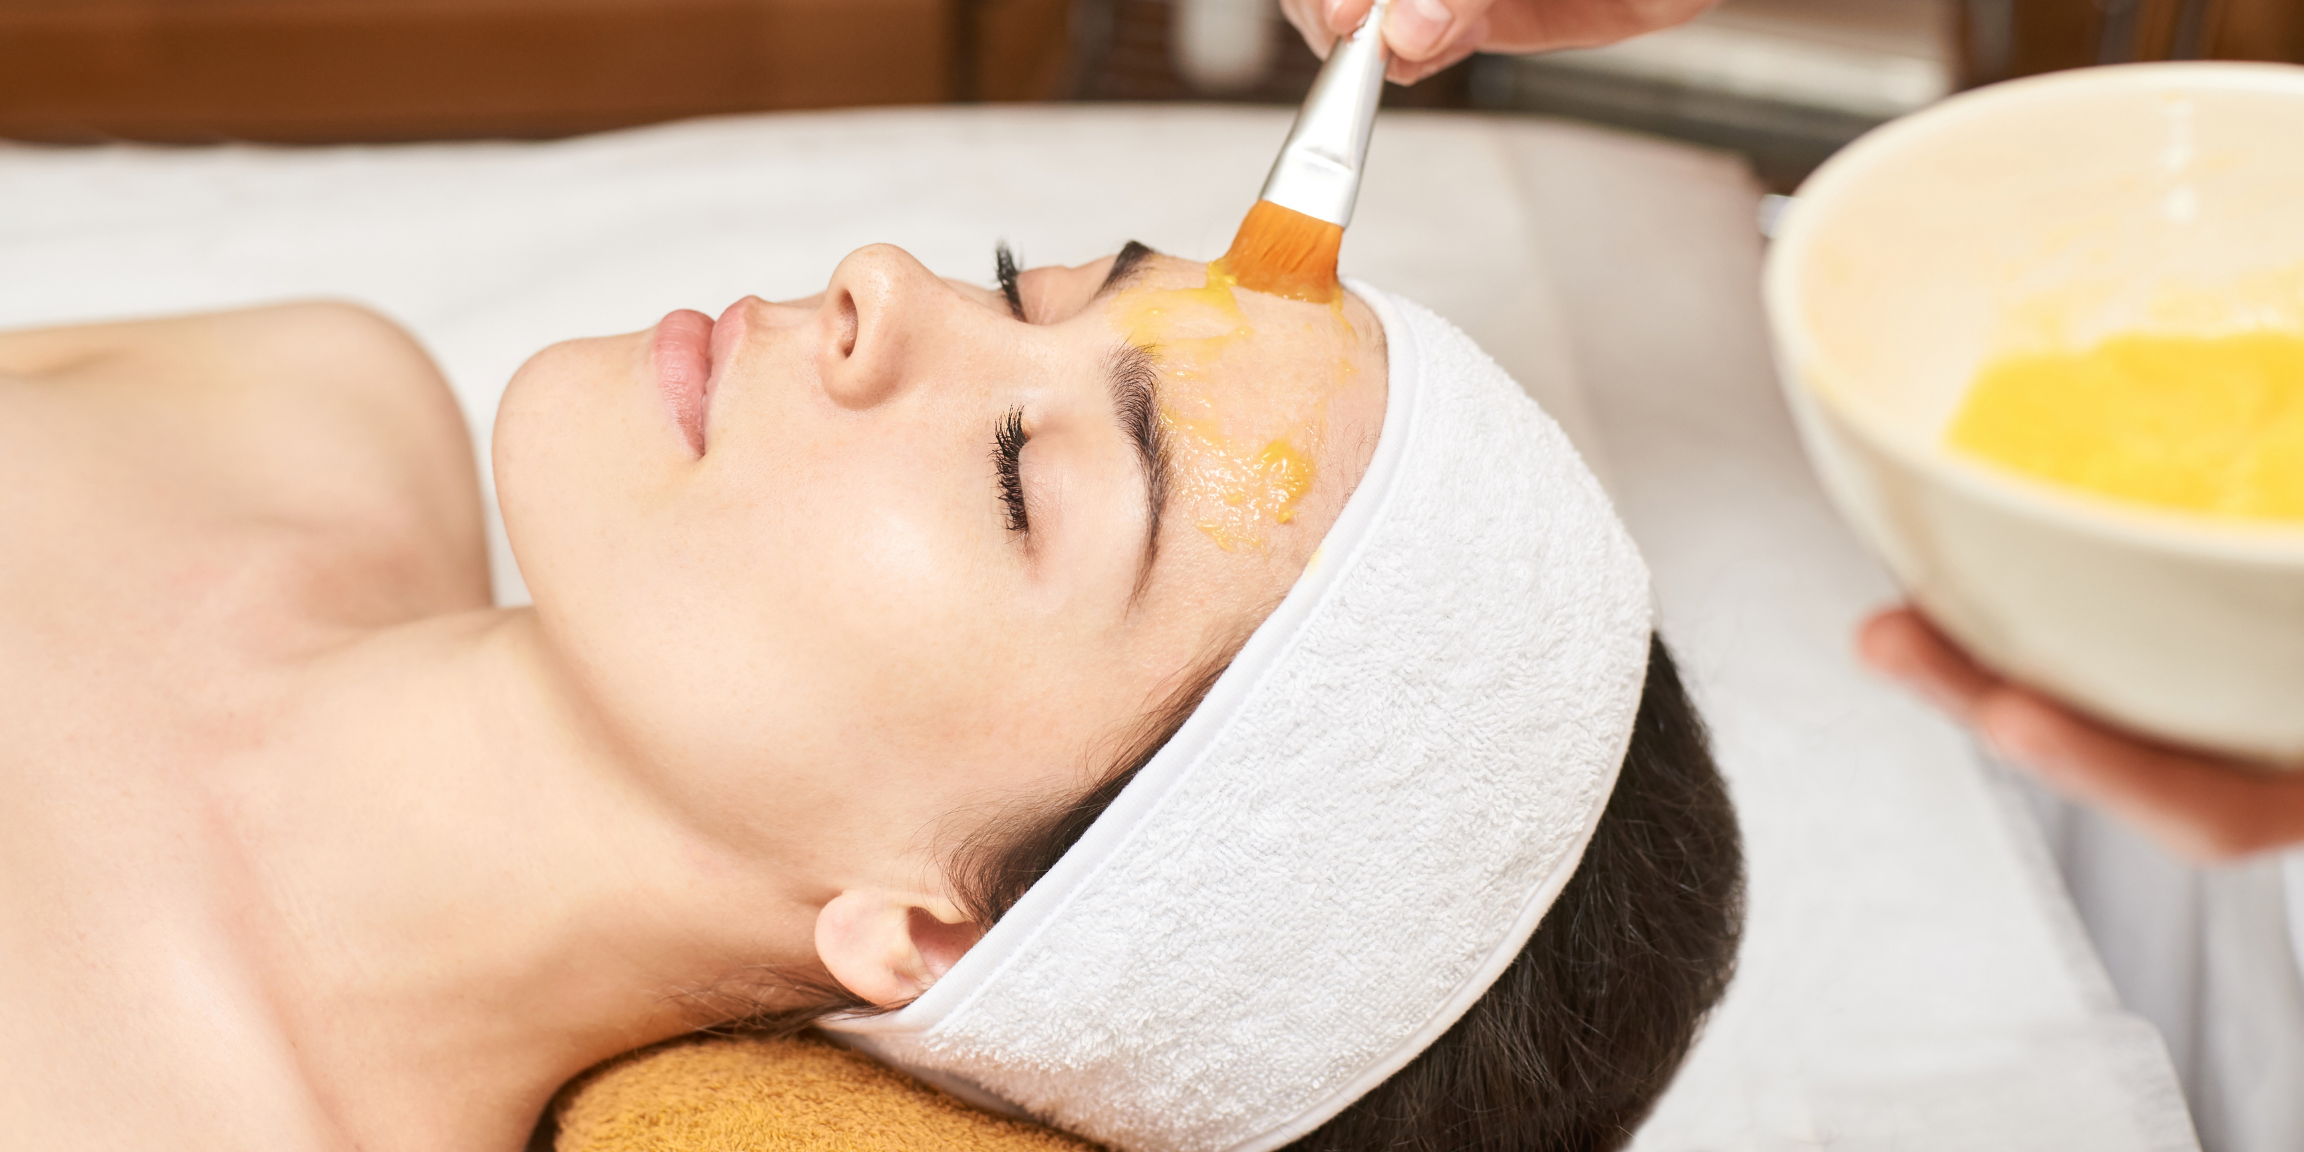 woman with skincare products being painted onto her face during a professional facial